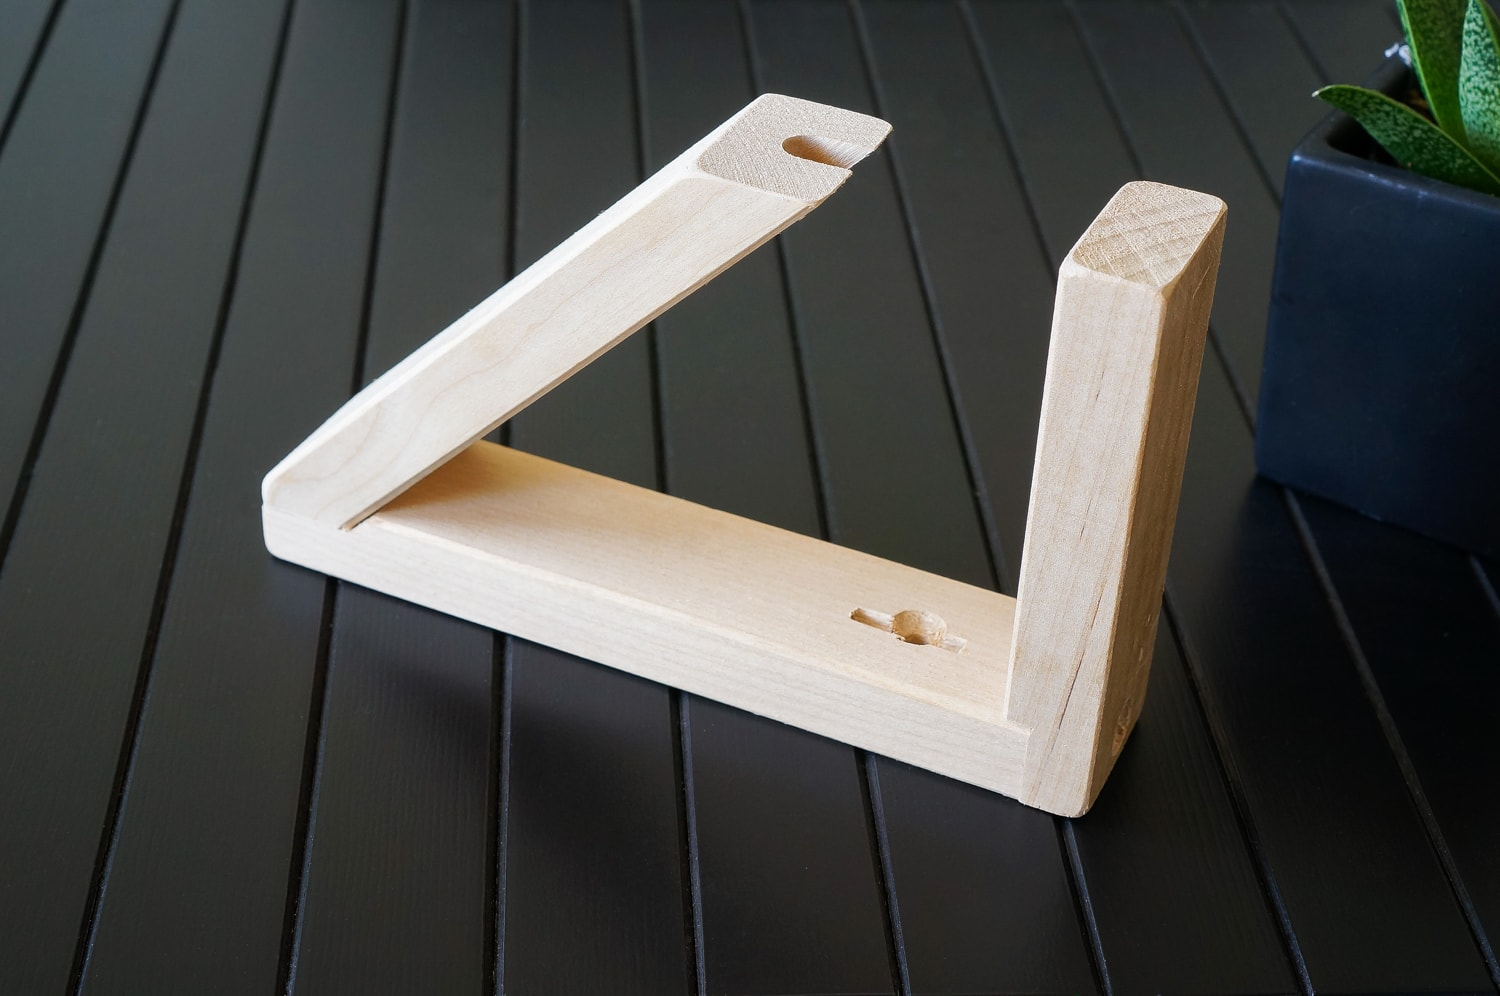 Wooden stand for boomerang